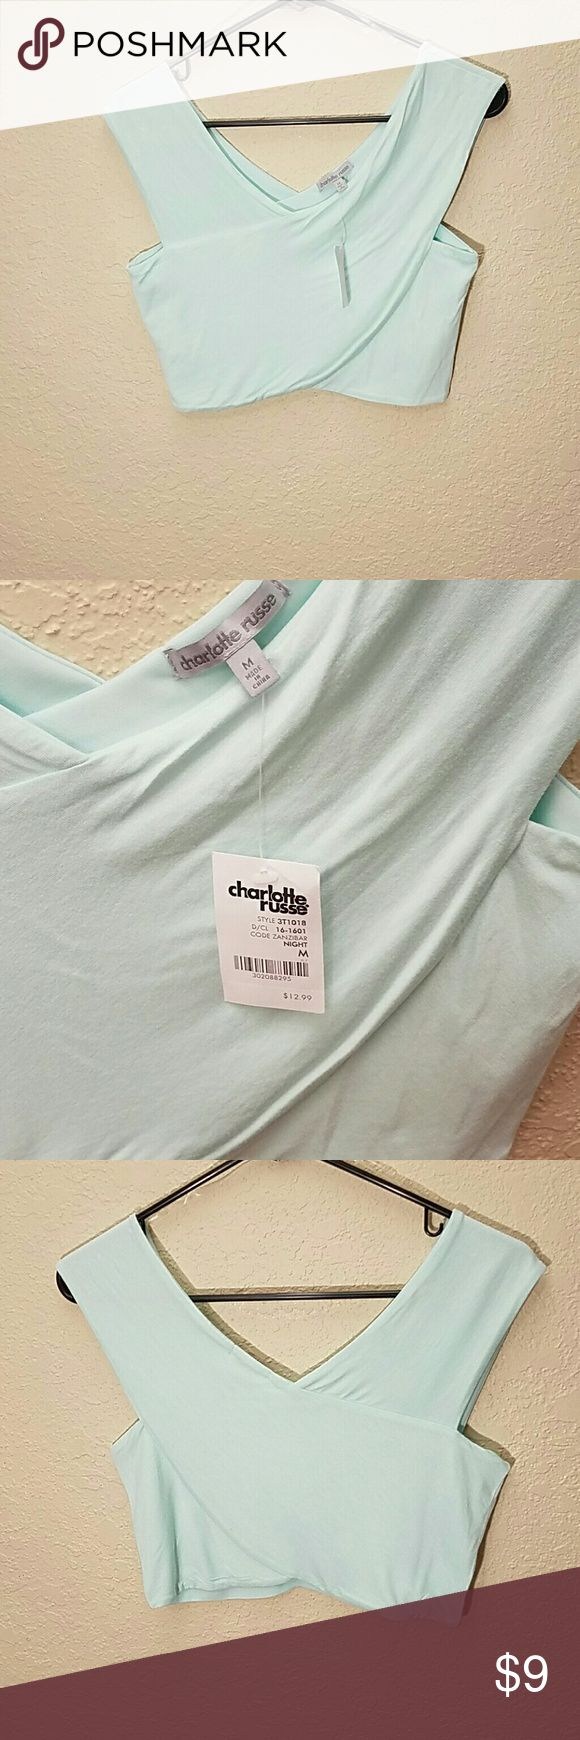 NWT medium crop top light blue  Charlotte Russe This is a medium sized crop top. Light Blue. From Charlotte Russe. New with tags, never been worn. Charlotte Russe Tops Crop Tops